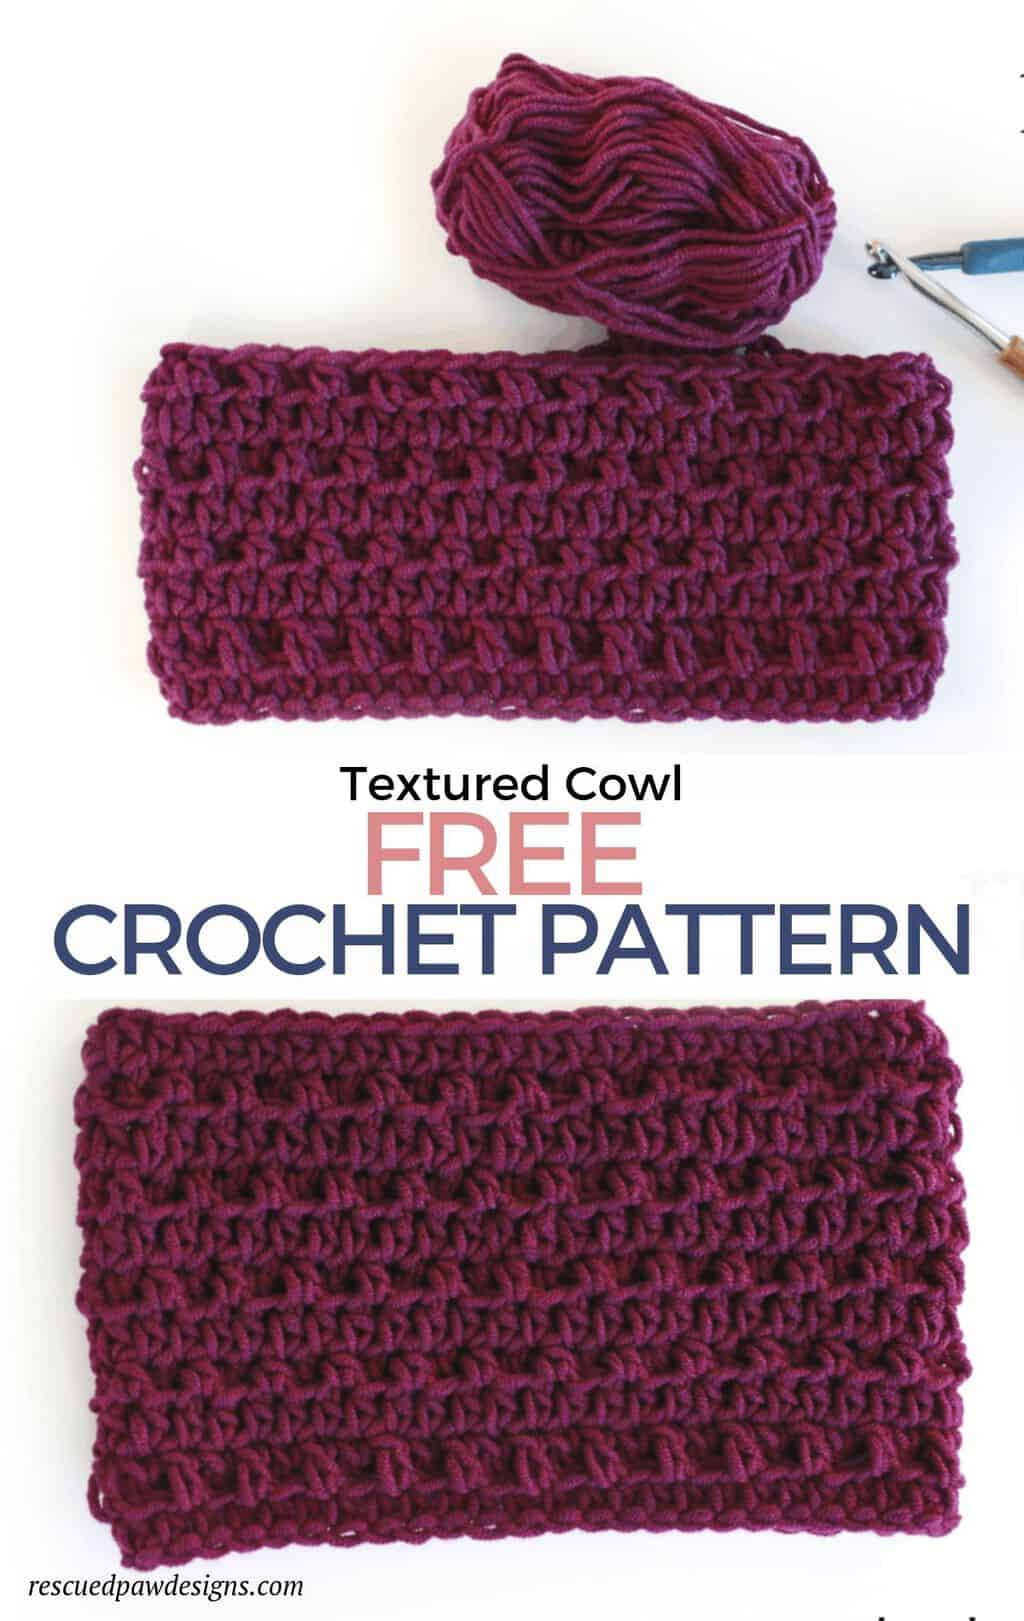 Free Textured Crochet Cowl Pattern